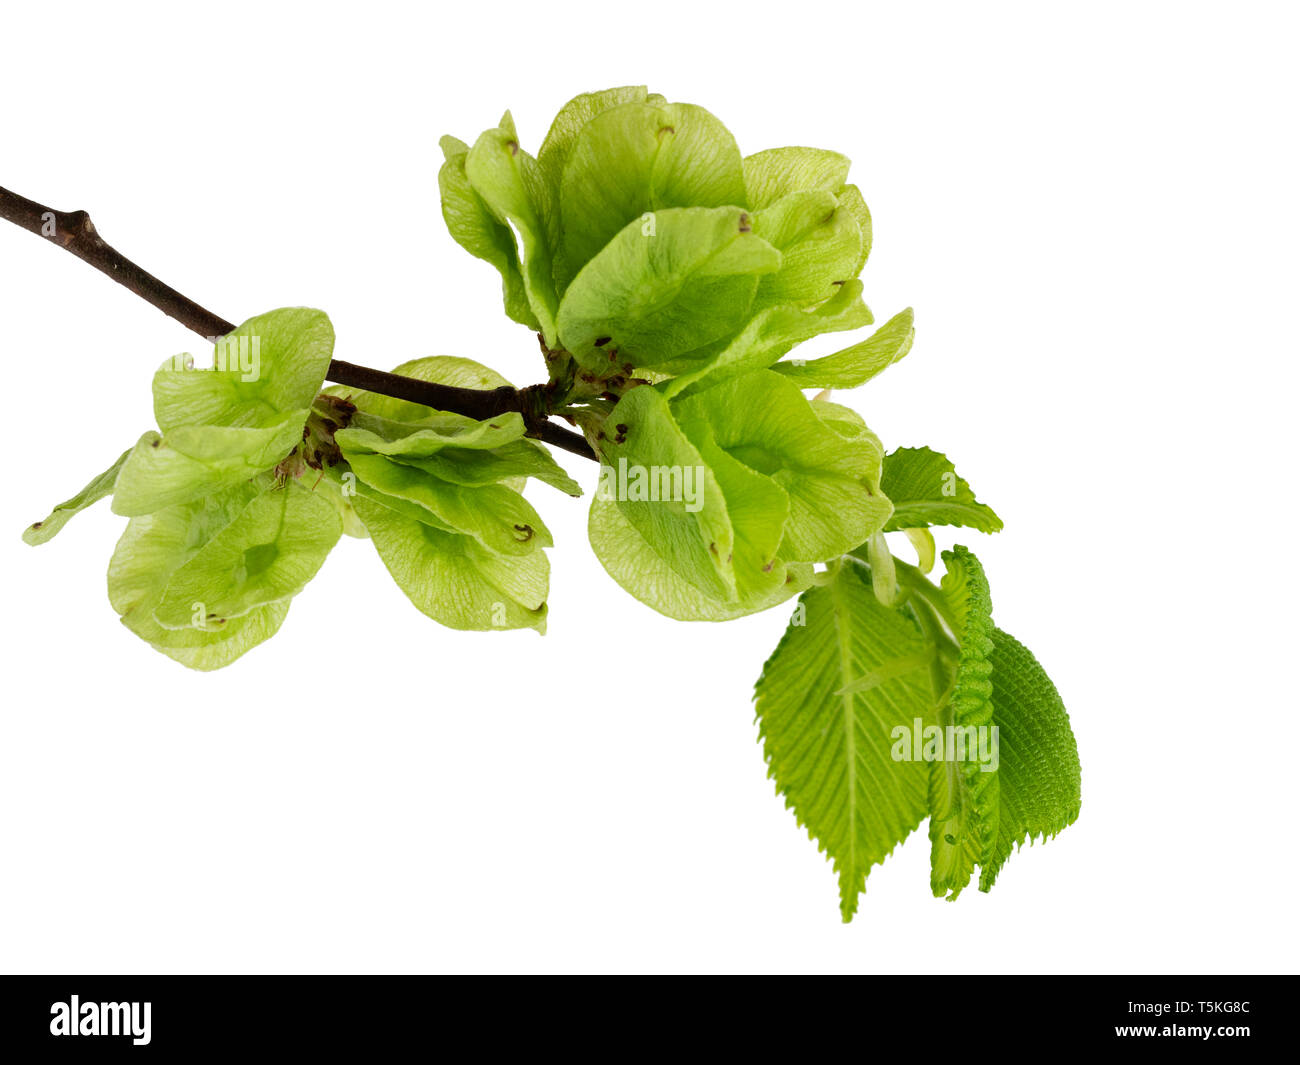 Spring foliage and winged seeds of the UK native Wych elm tree, Ulmus glabra on a white background - Stock Image